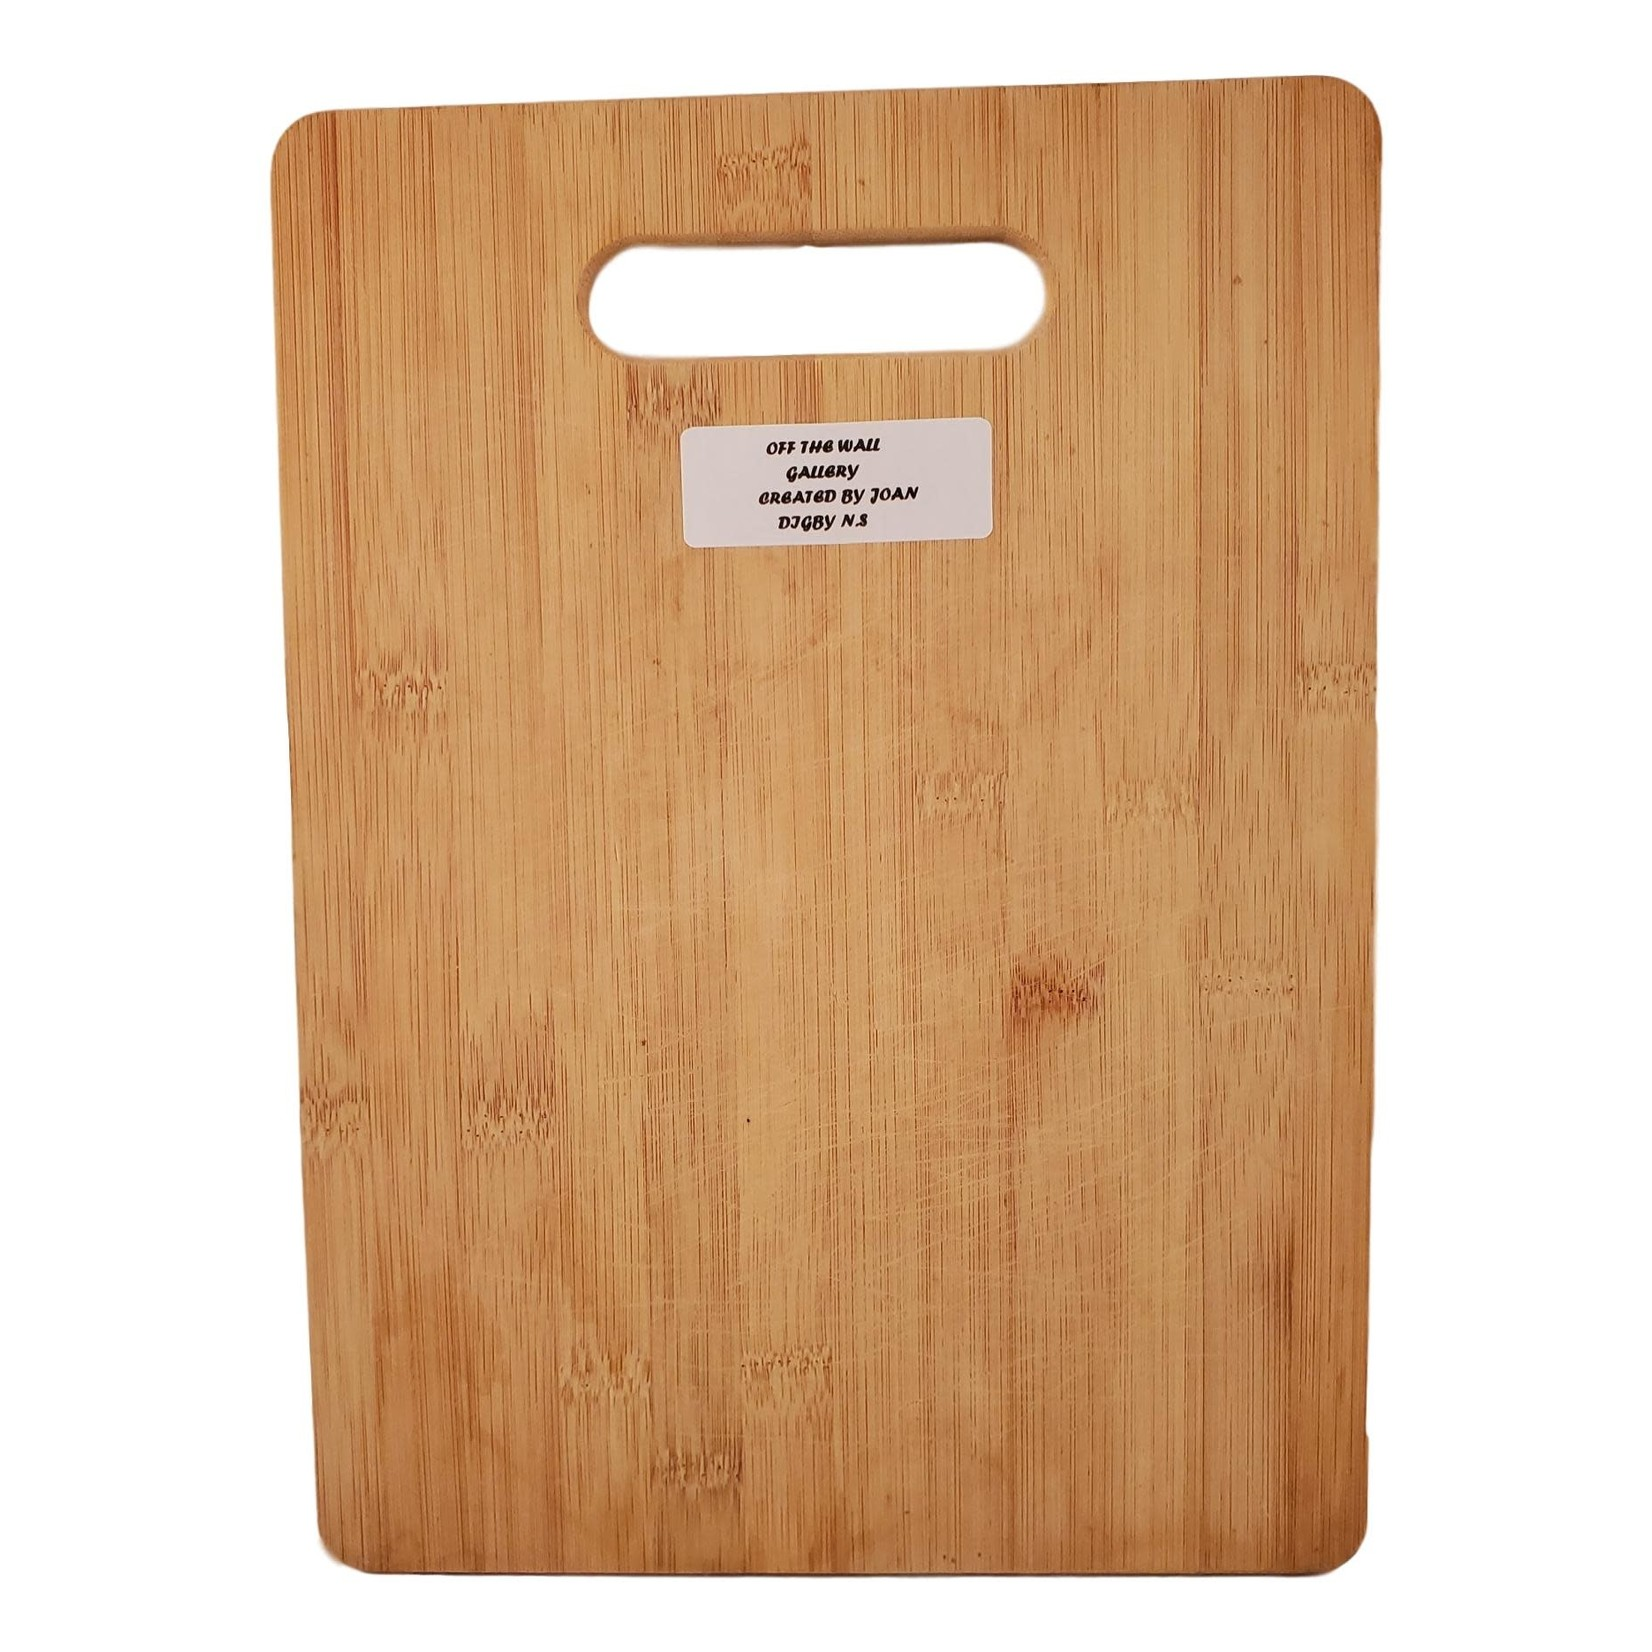 Off The Wall Gallery Hand-painted Cutting Board / Serving Tray